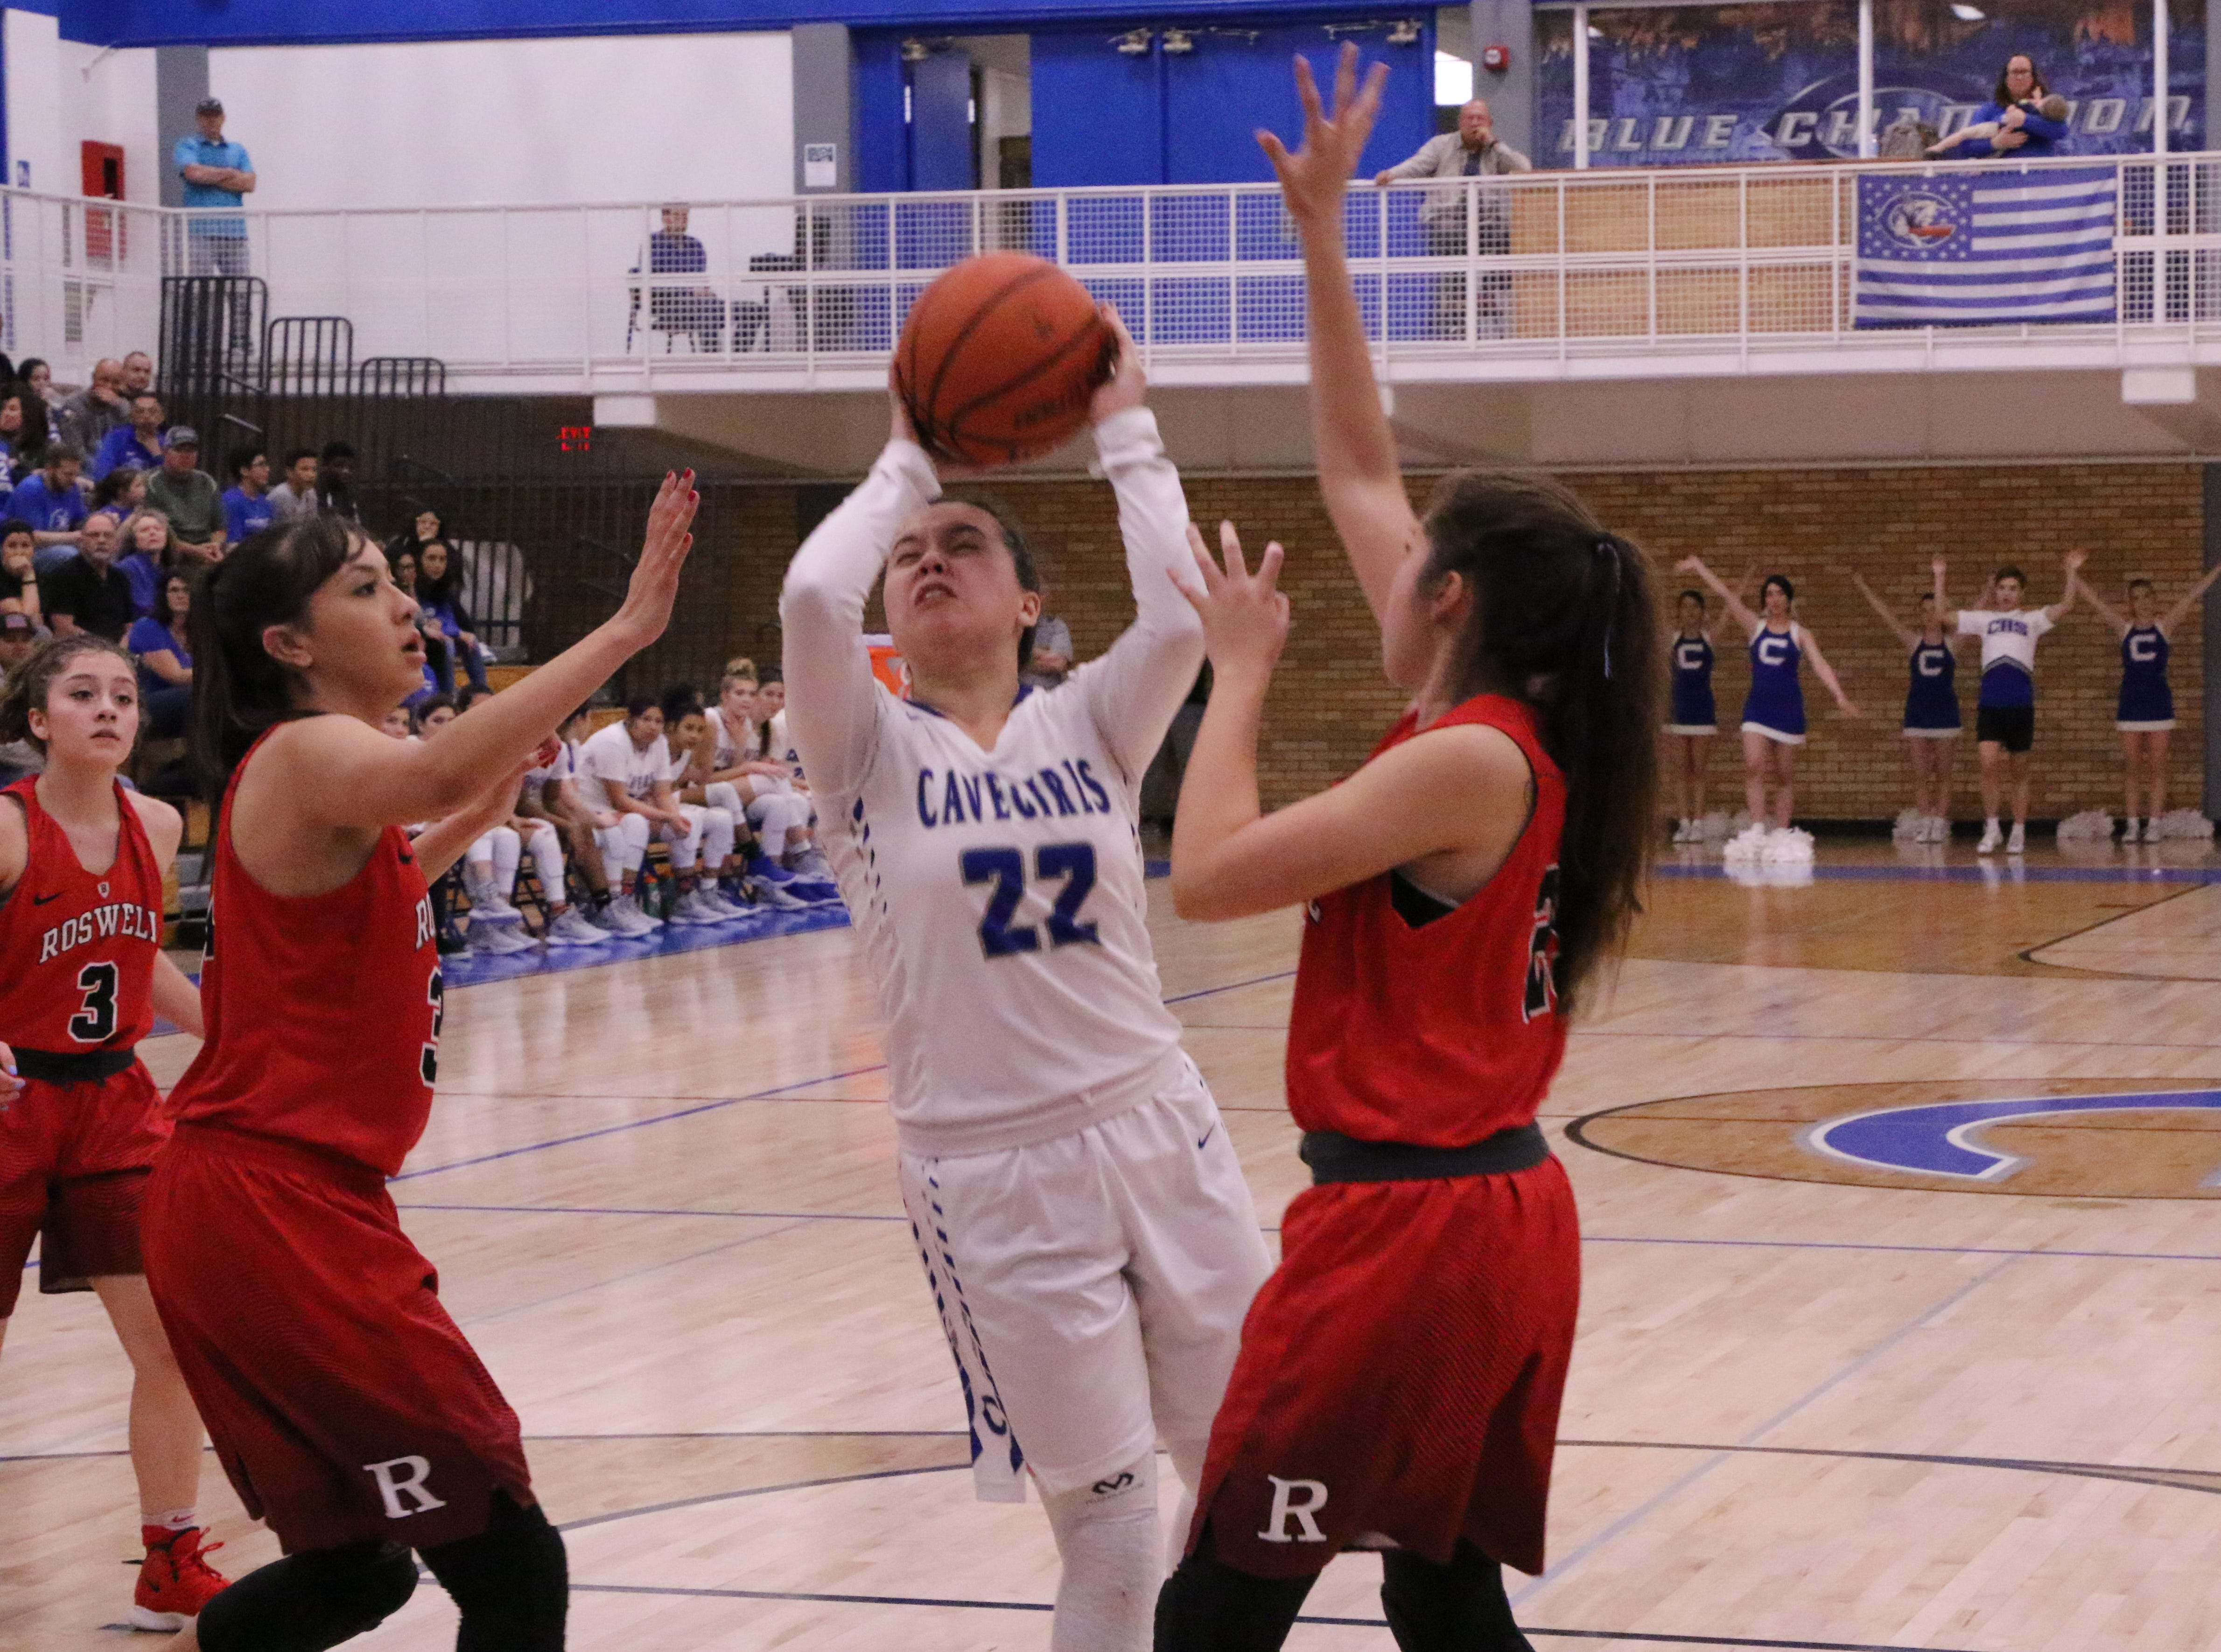 Nyah Chacon (22) goes for a shot during the first half of Friday's game.